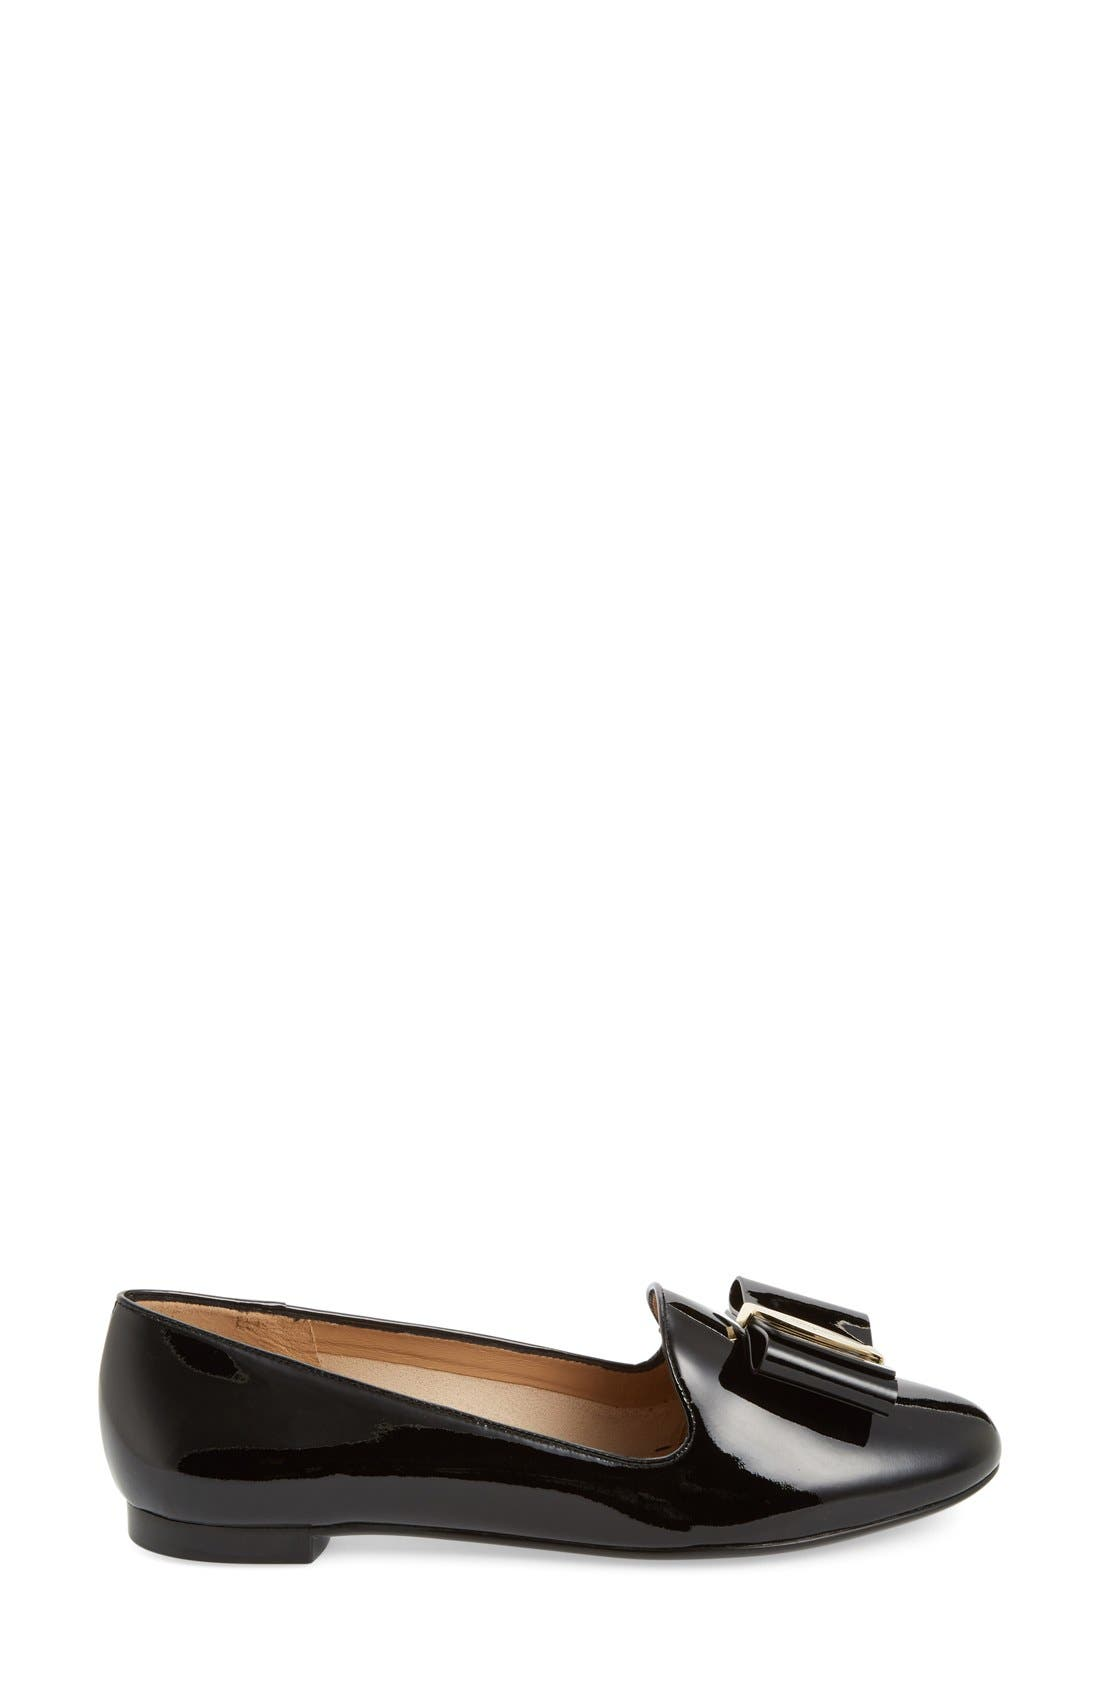 Bow Smoking Loafer,                             Alternate thumbnail 4, color,                             001